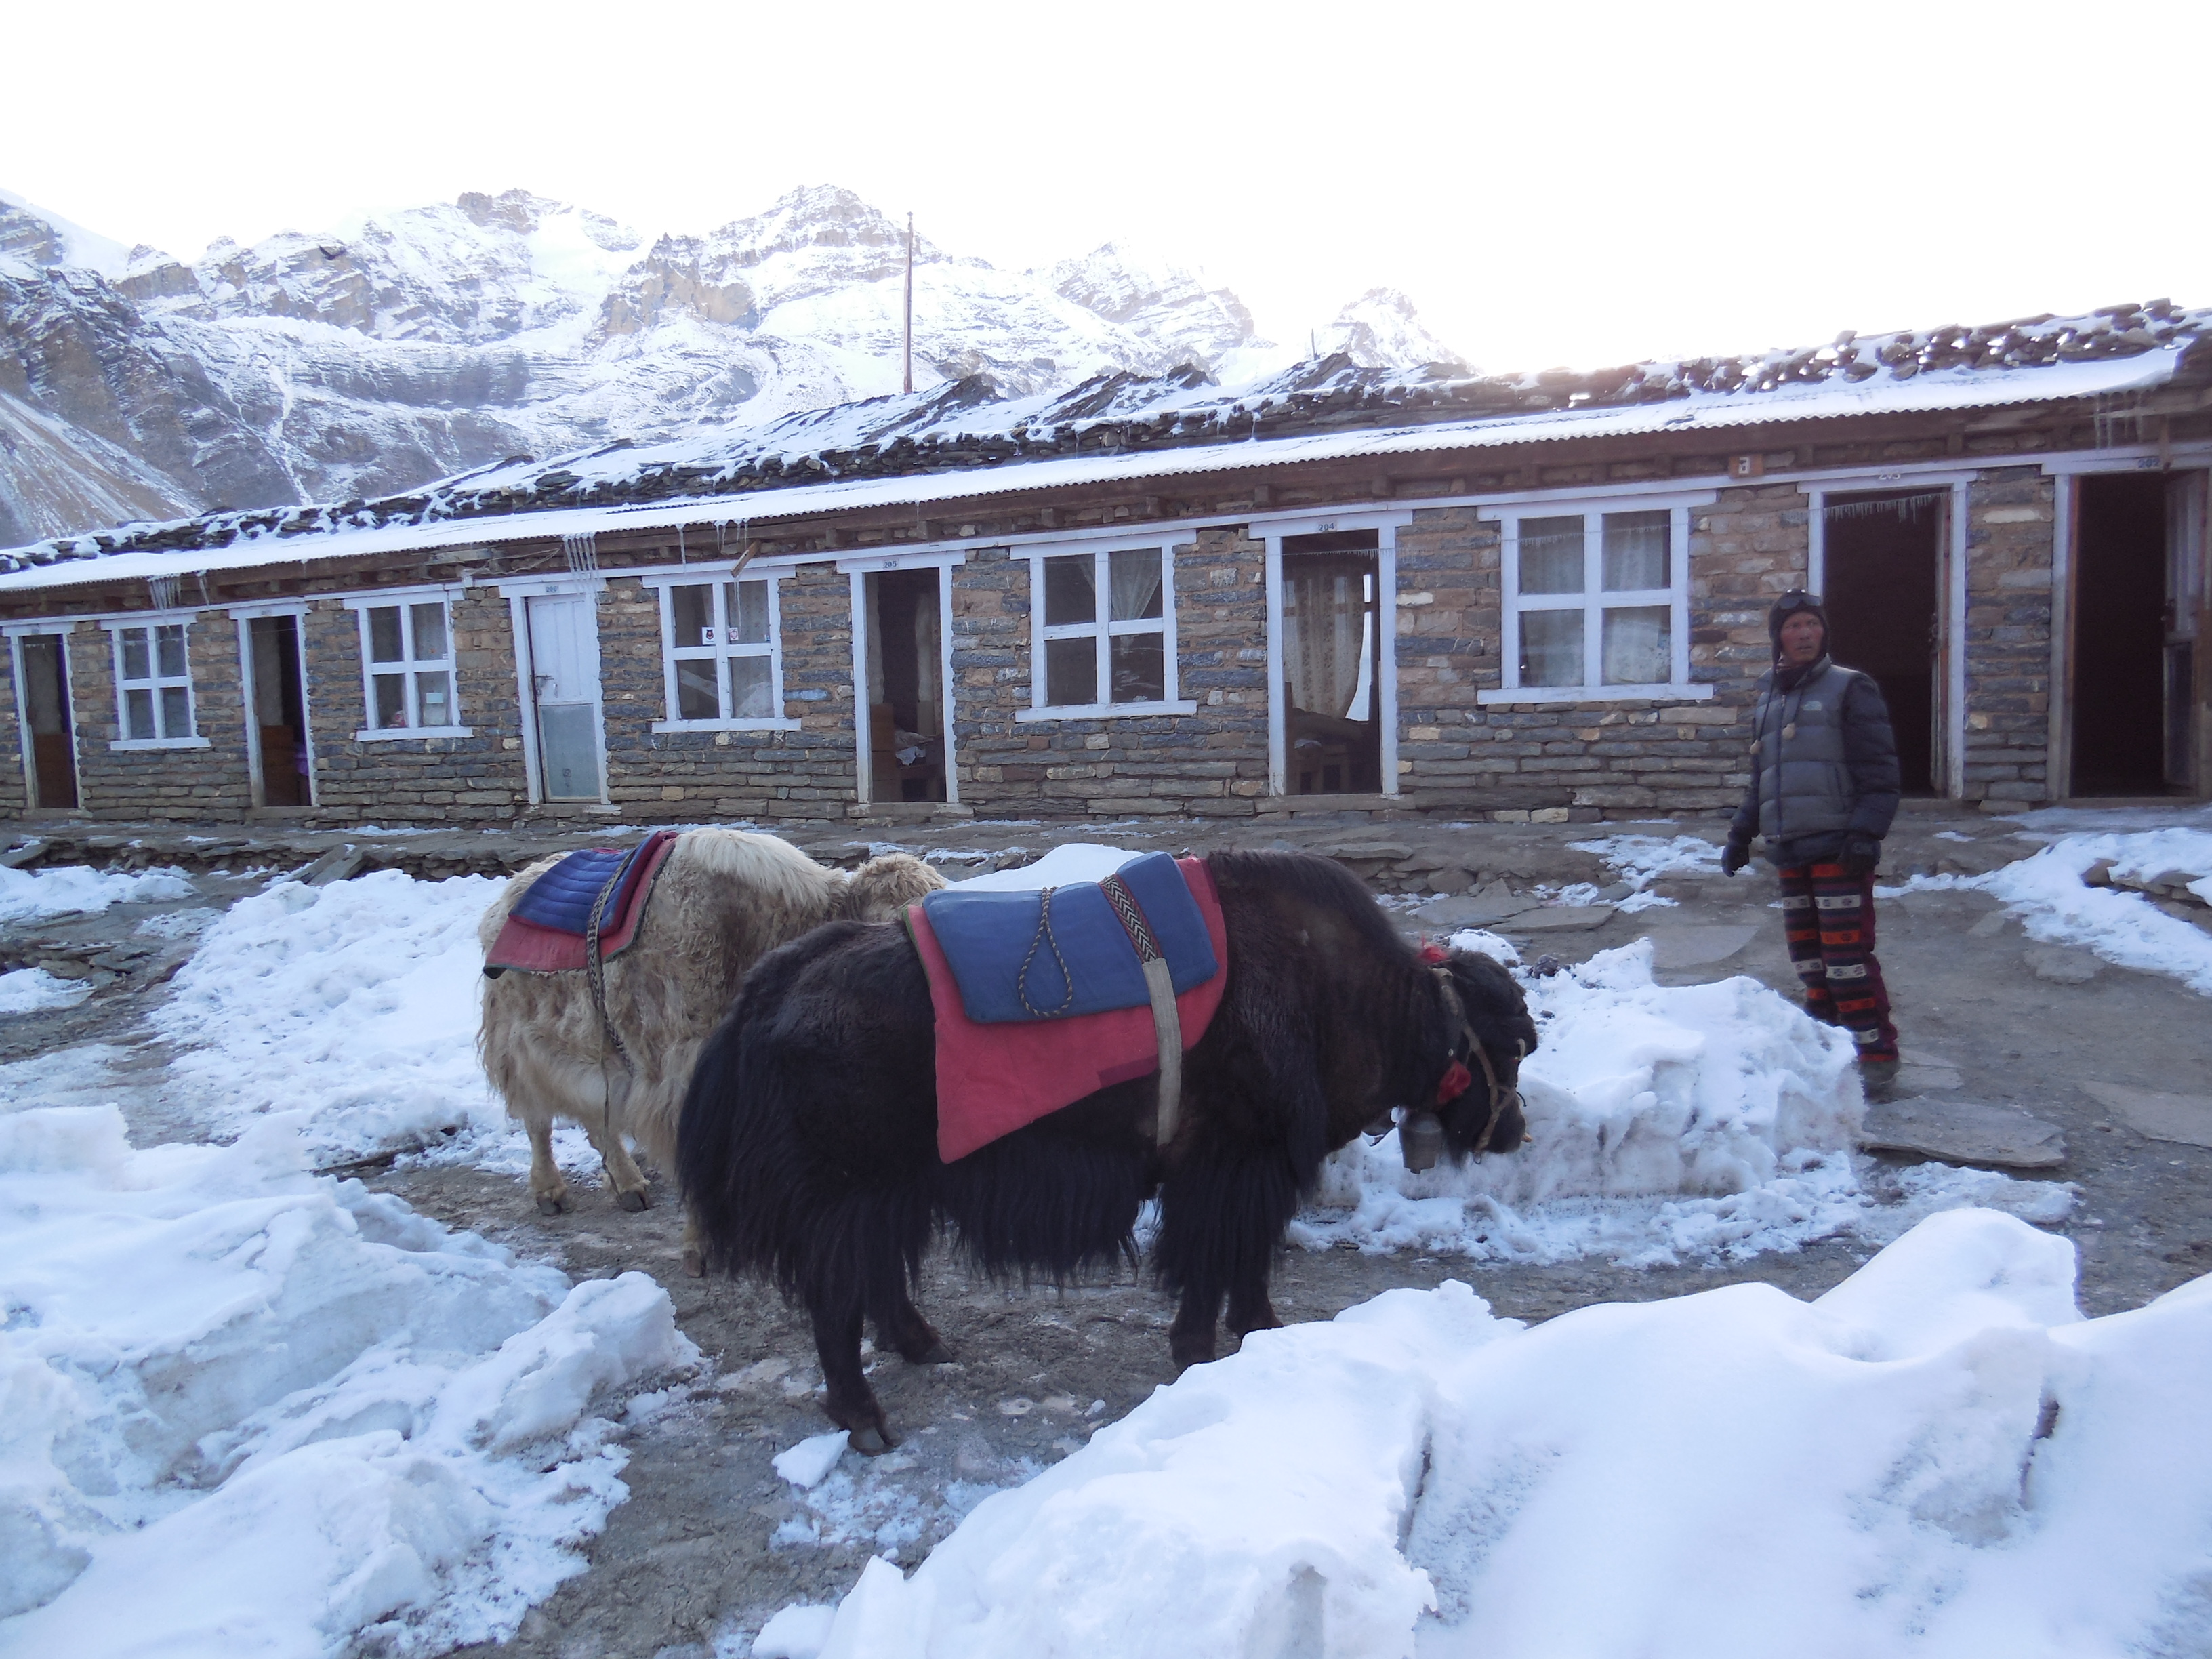 Yak Business. People can hire a yak guide and ride on the yak up to Thorung La. I think it cost something around 200 Dollar